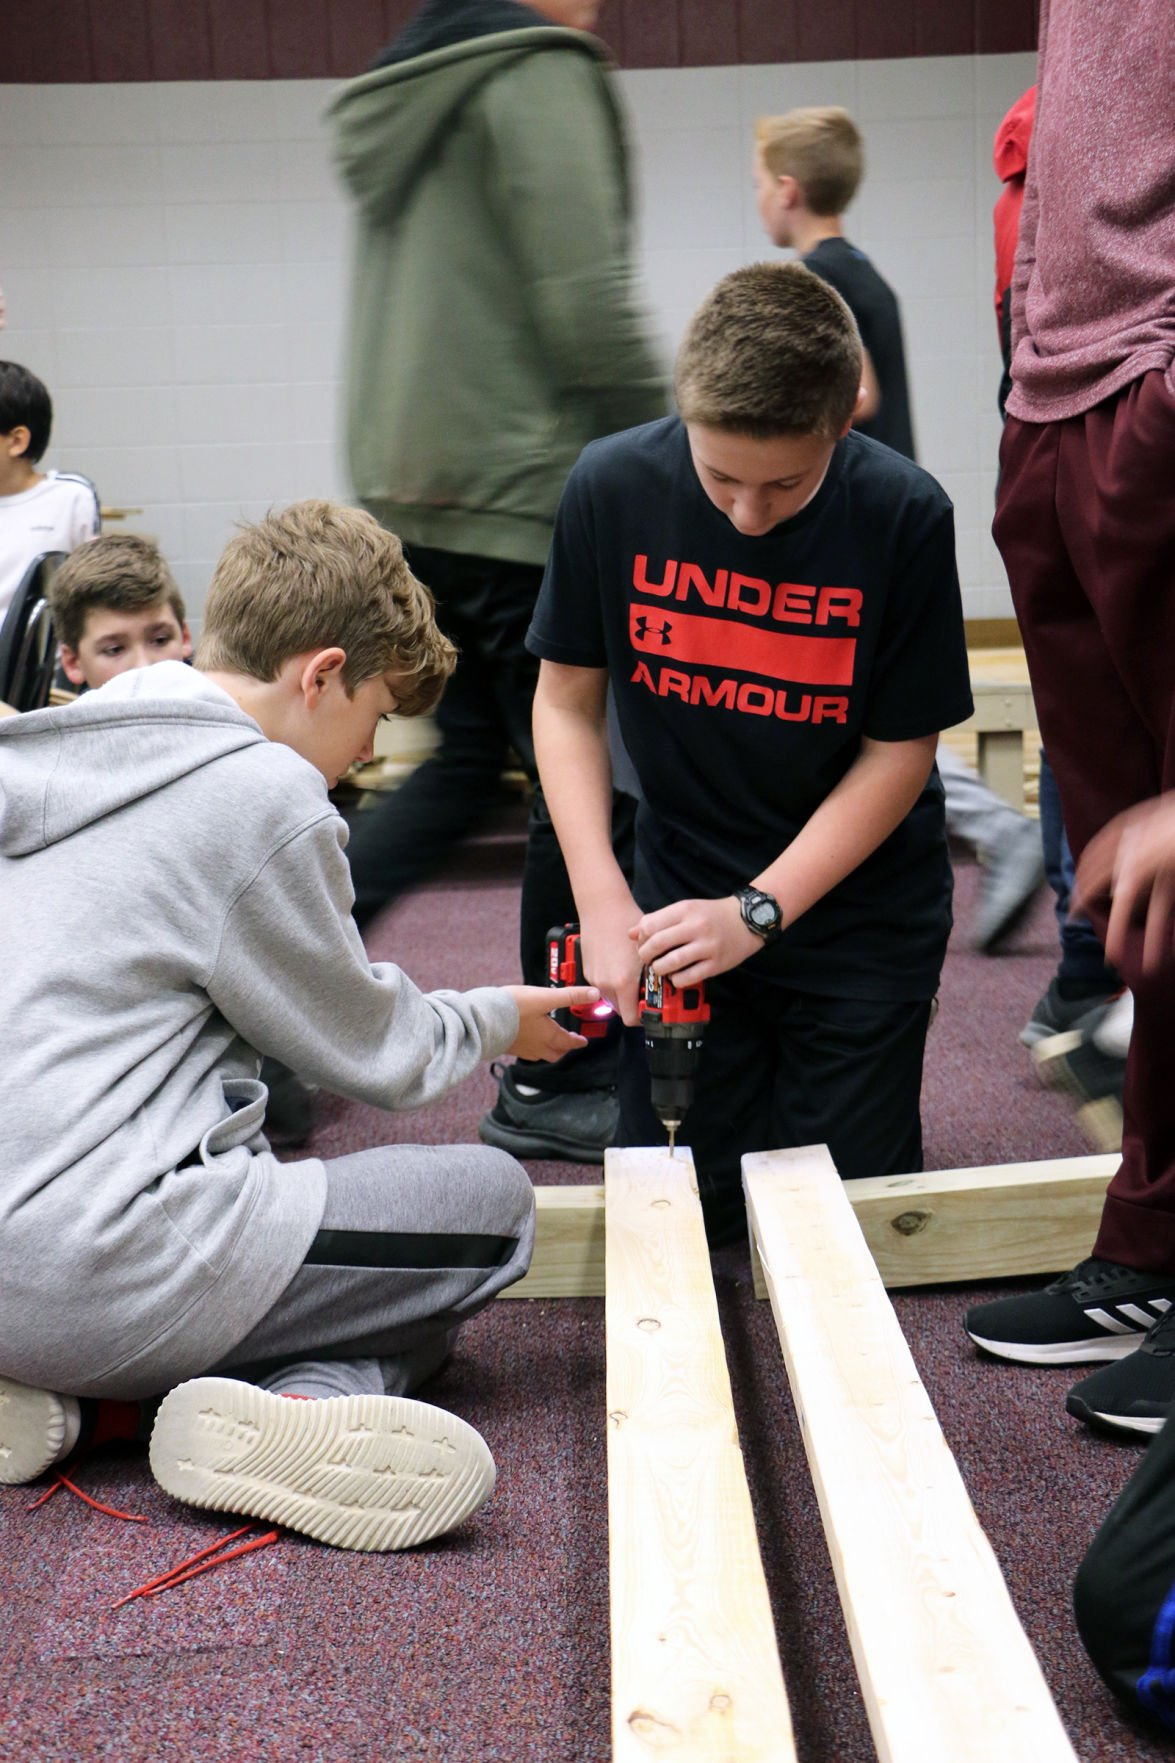 Pirates build beds for less fortunate | Seventh graders enjoy learning, giving back to community